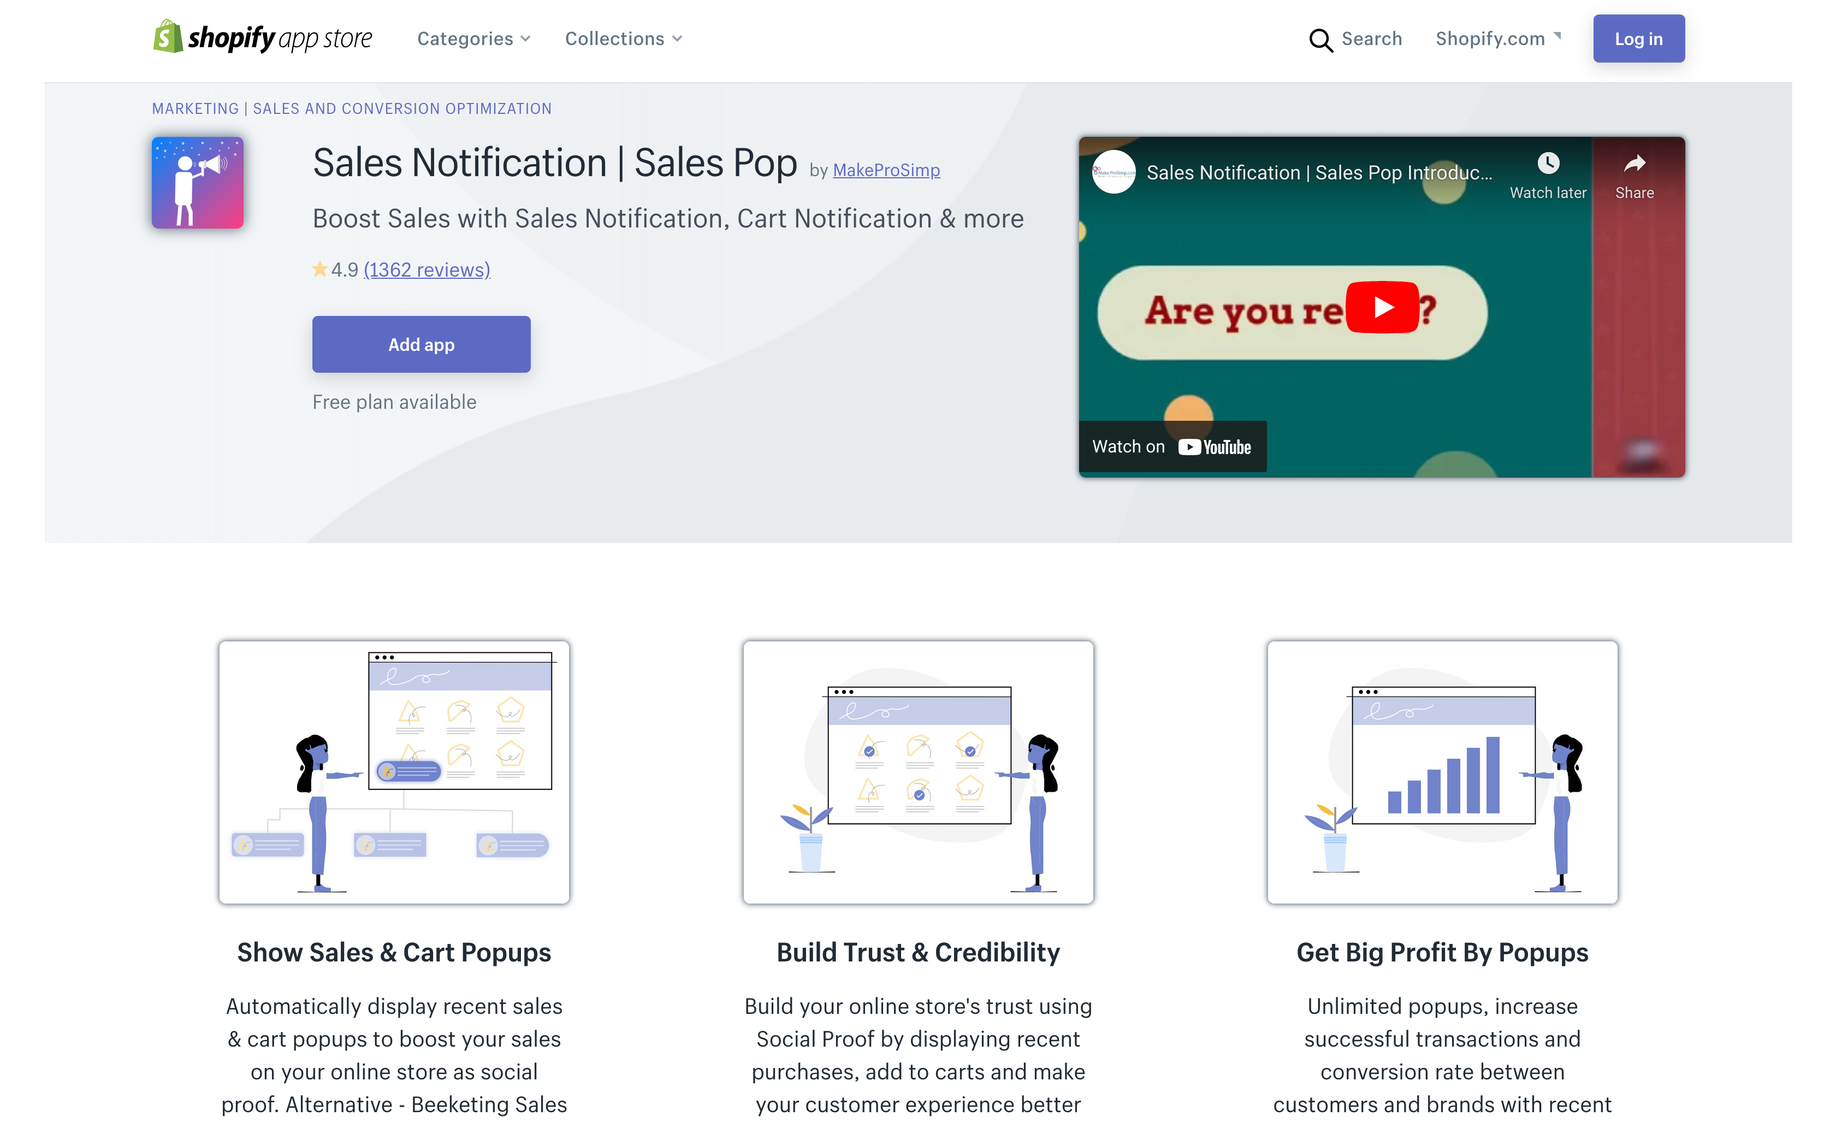 sales notificaiton shopify